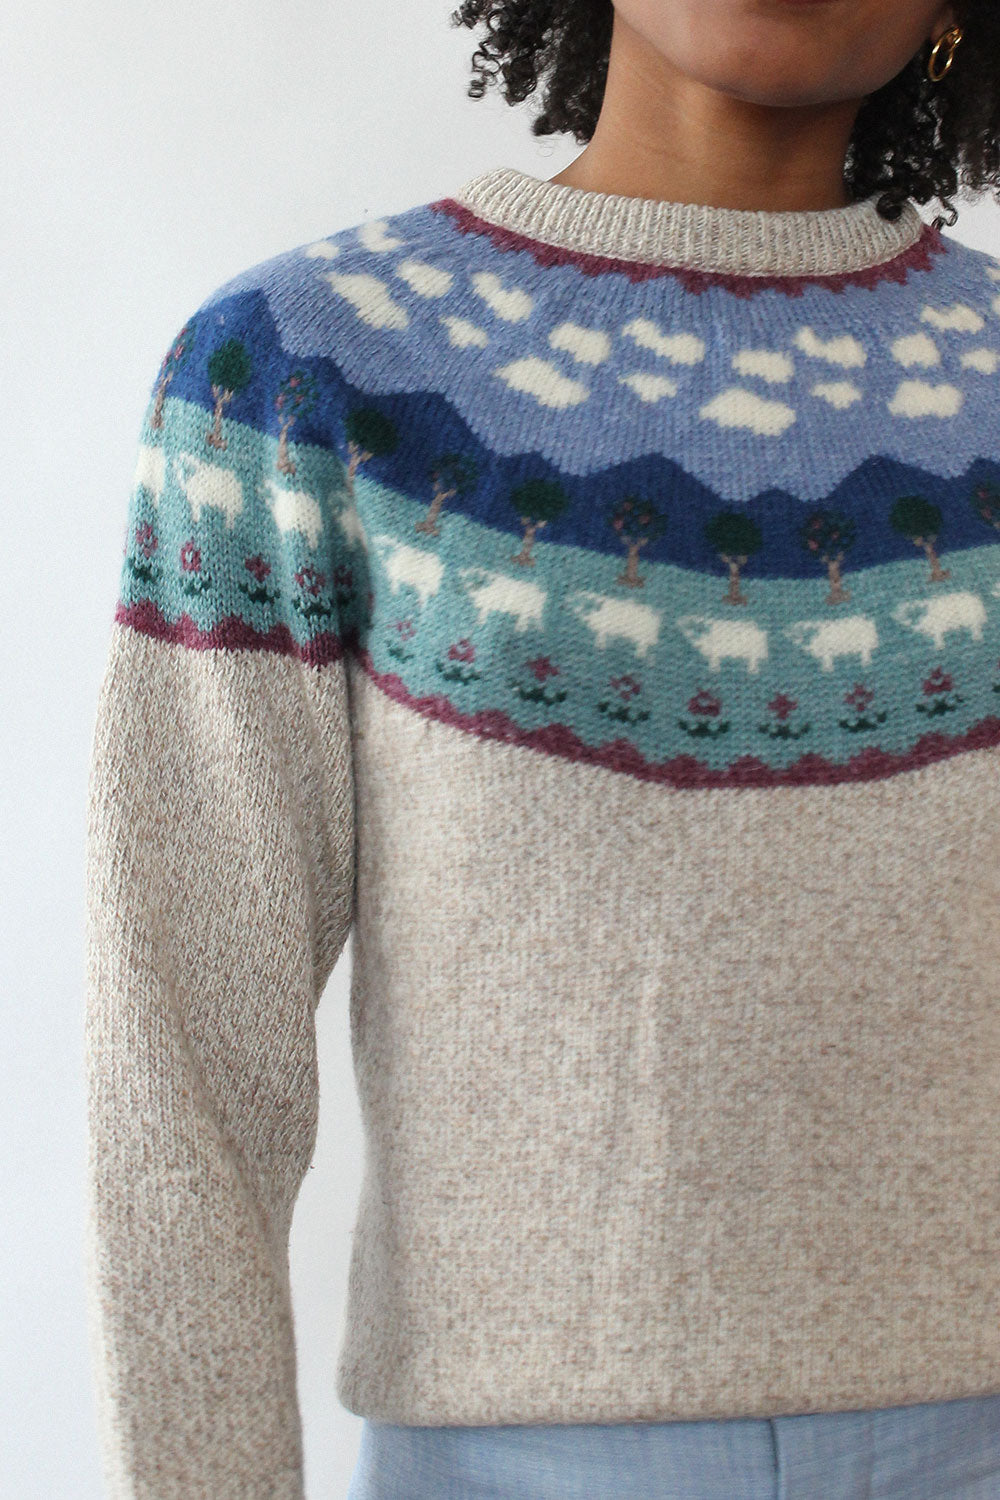 Counting Sheep Sweater XS-M